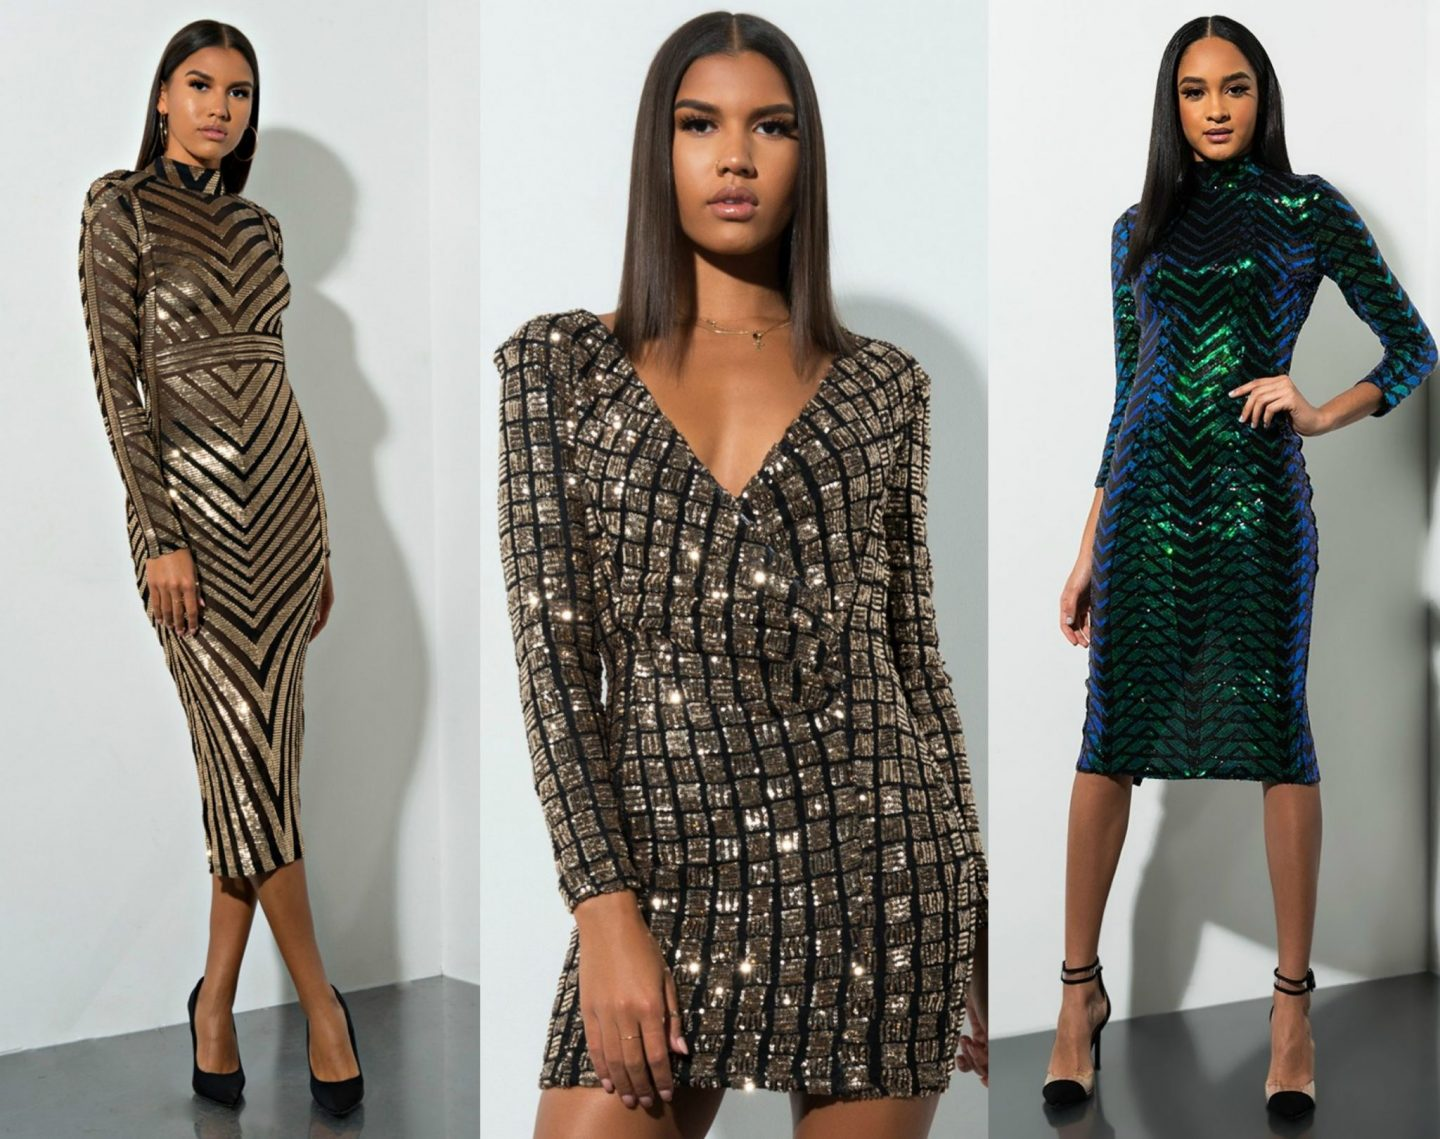 Sequin Outfits for the Holidays and Beyond